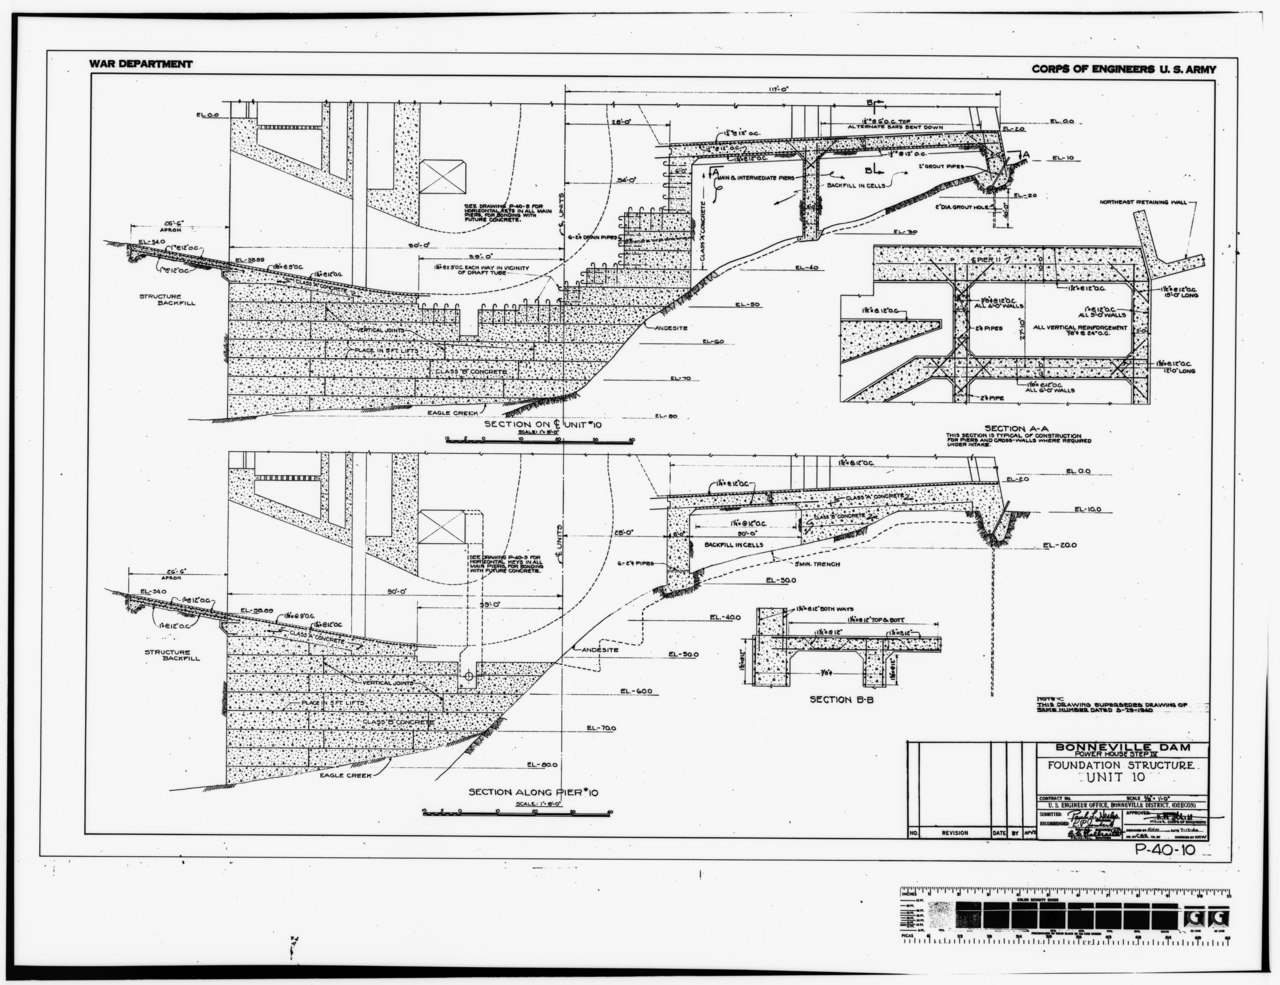 File Photocopy Of Original Construction Drawing Dated 12 July Original Print In The